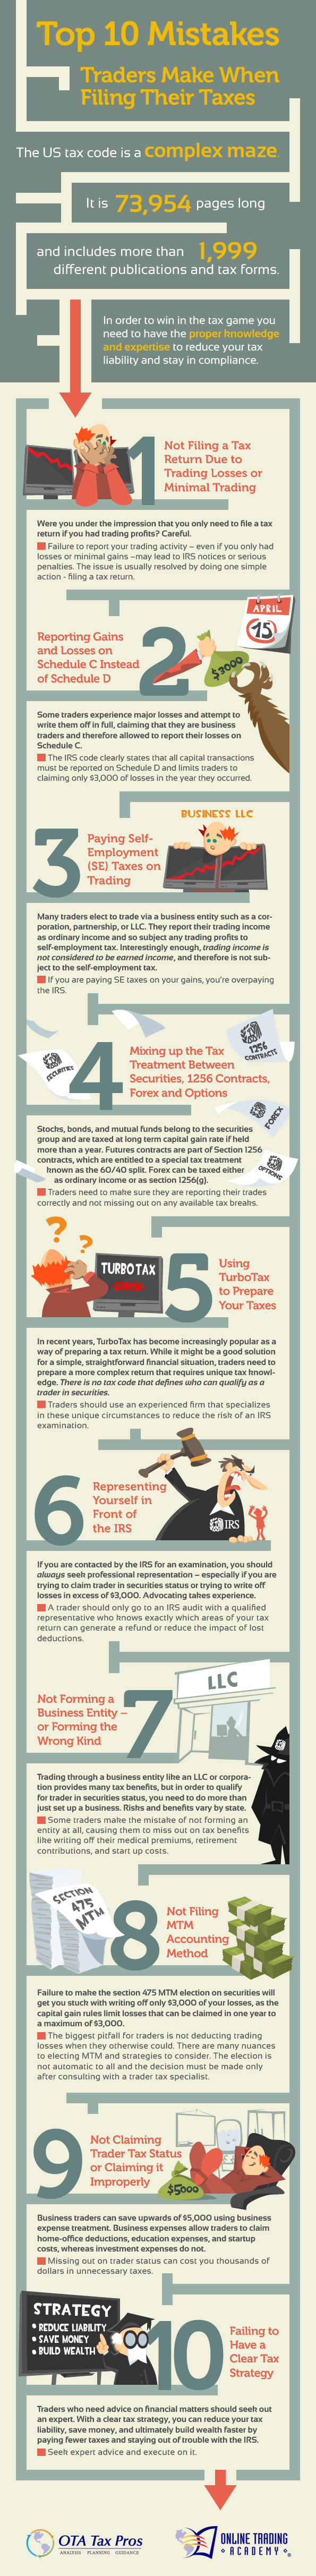 Top 10 Mistakes Traders Make When Filing Their Taxes